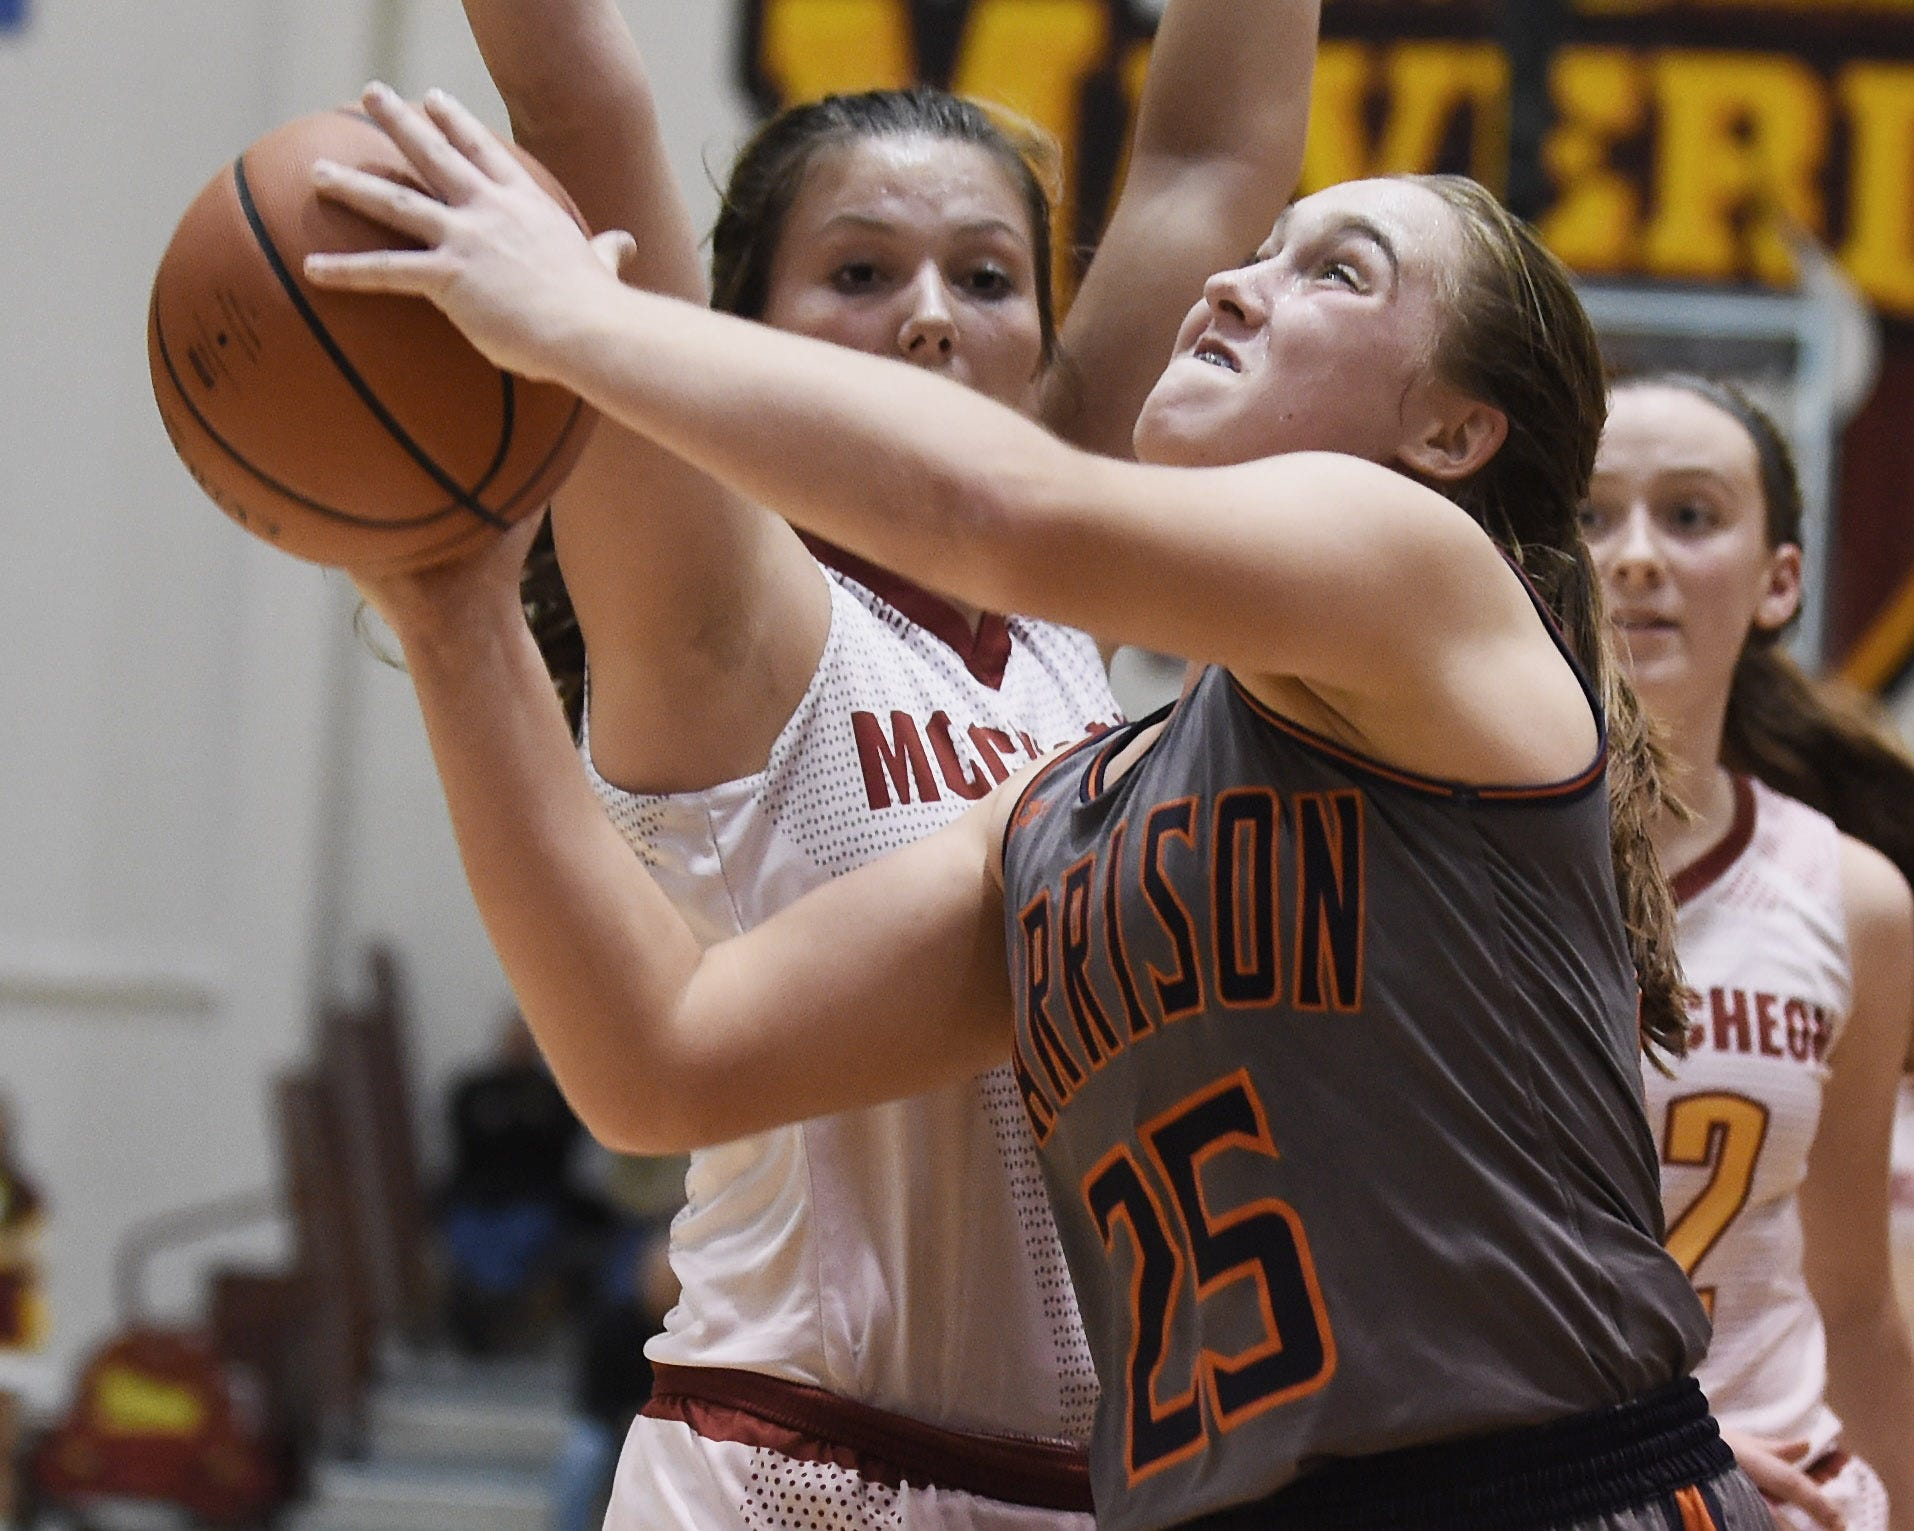 Emma Henderson scored nine points Friday night against McCutcheon to help the Raiders advance to the sectional championship.